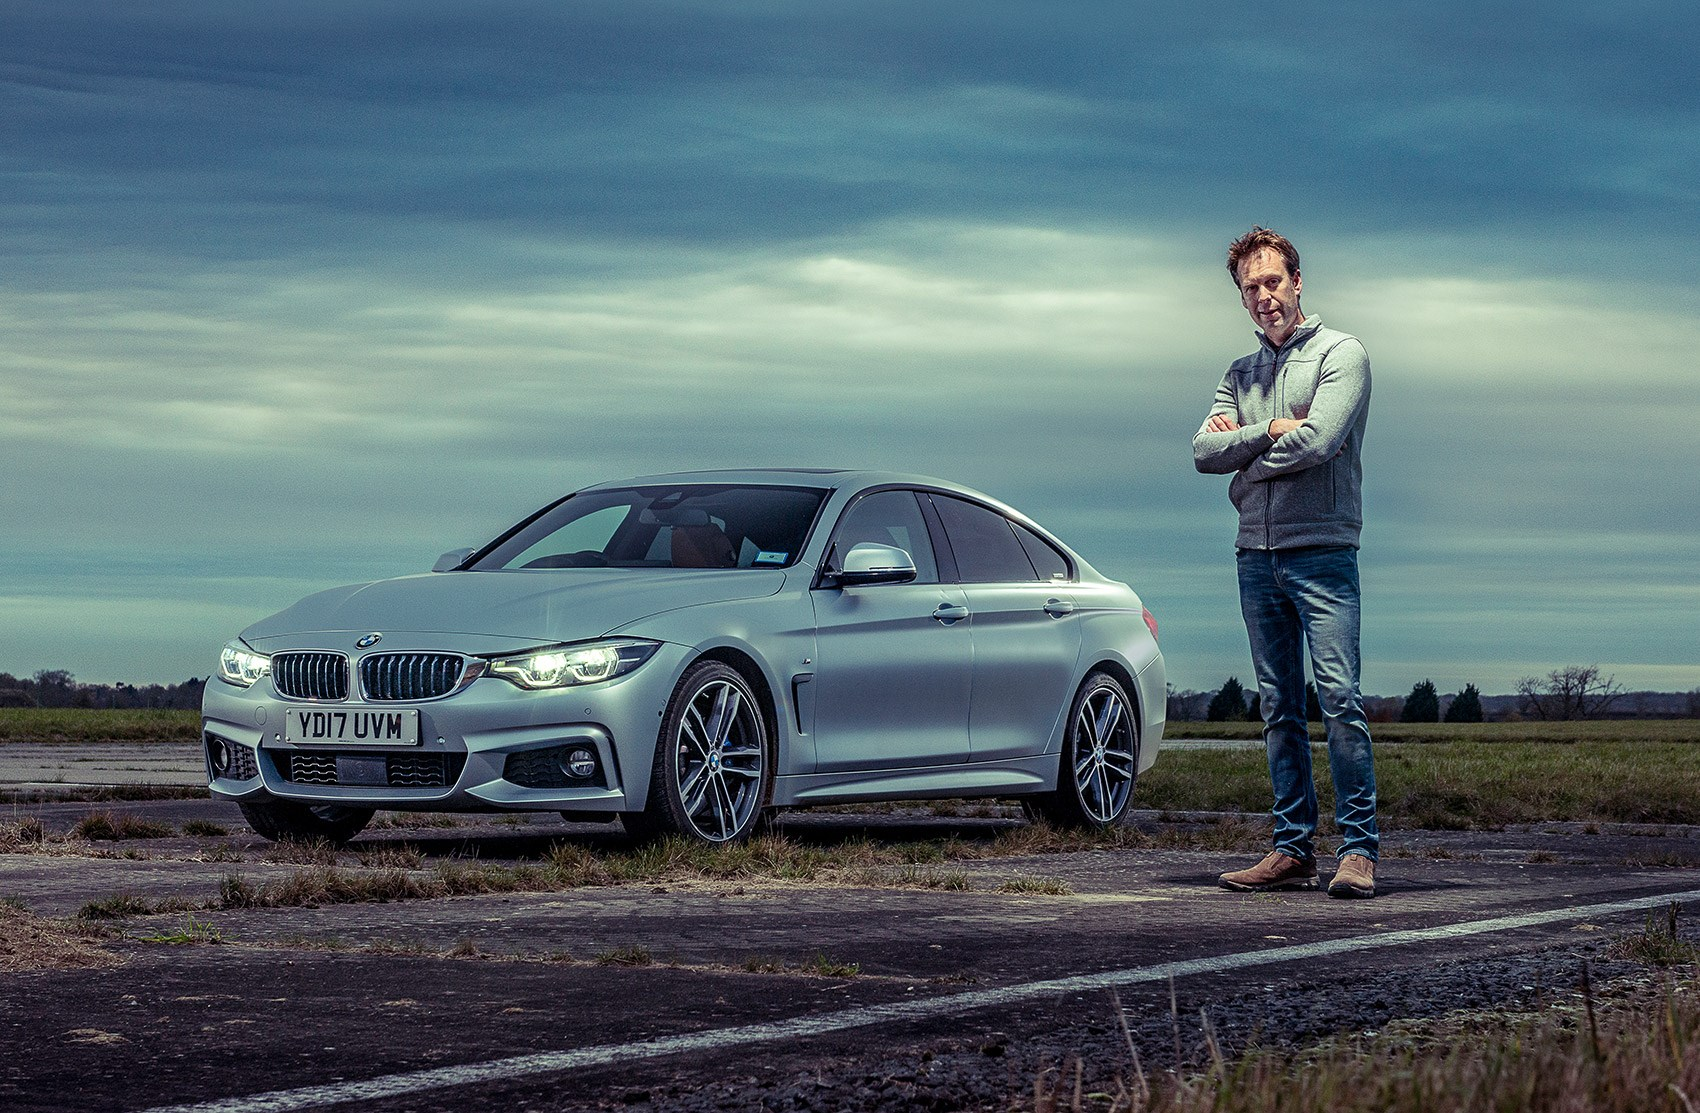 Keeper Ben Barry Welcomes The Bmw 4 Series Gran Coupe To Our Daily Driver Fleet